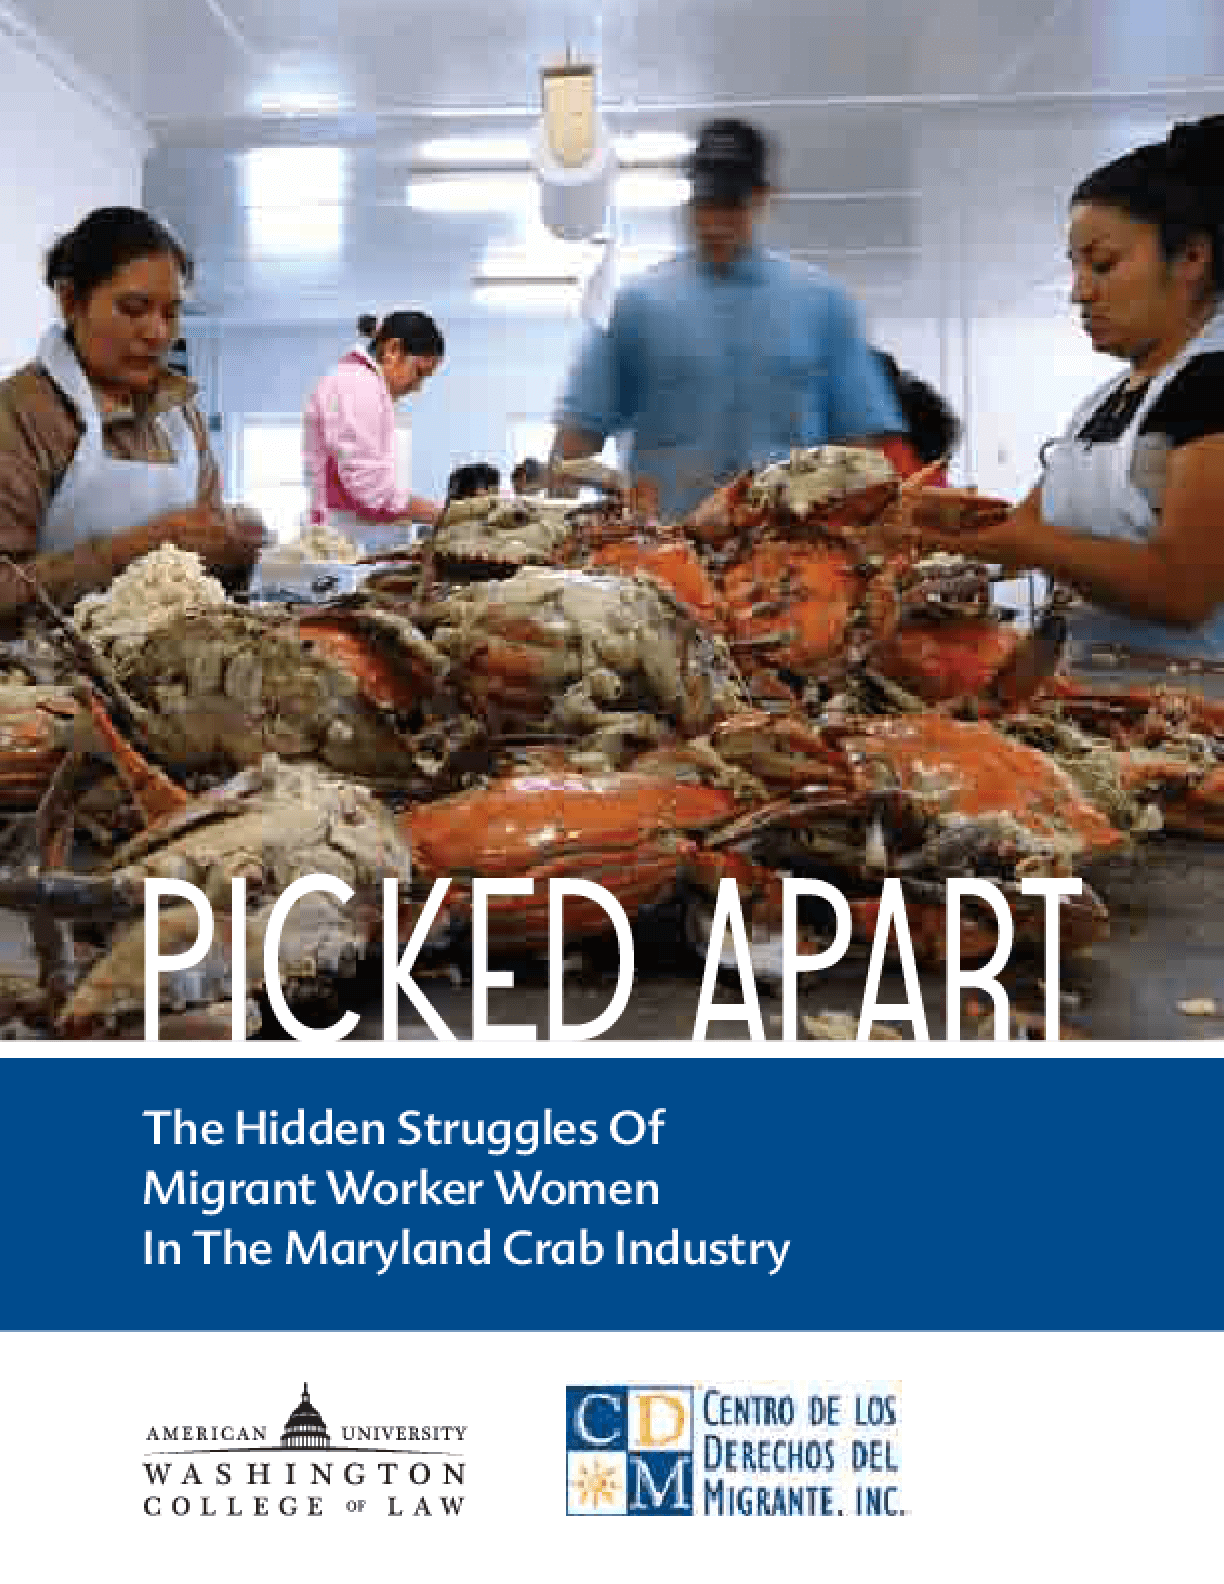 Picked Apart: The Hidden Struggles of Migrant Worker Women in the Maryland Crab Industry